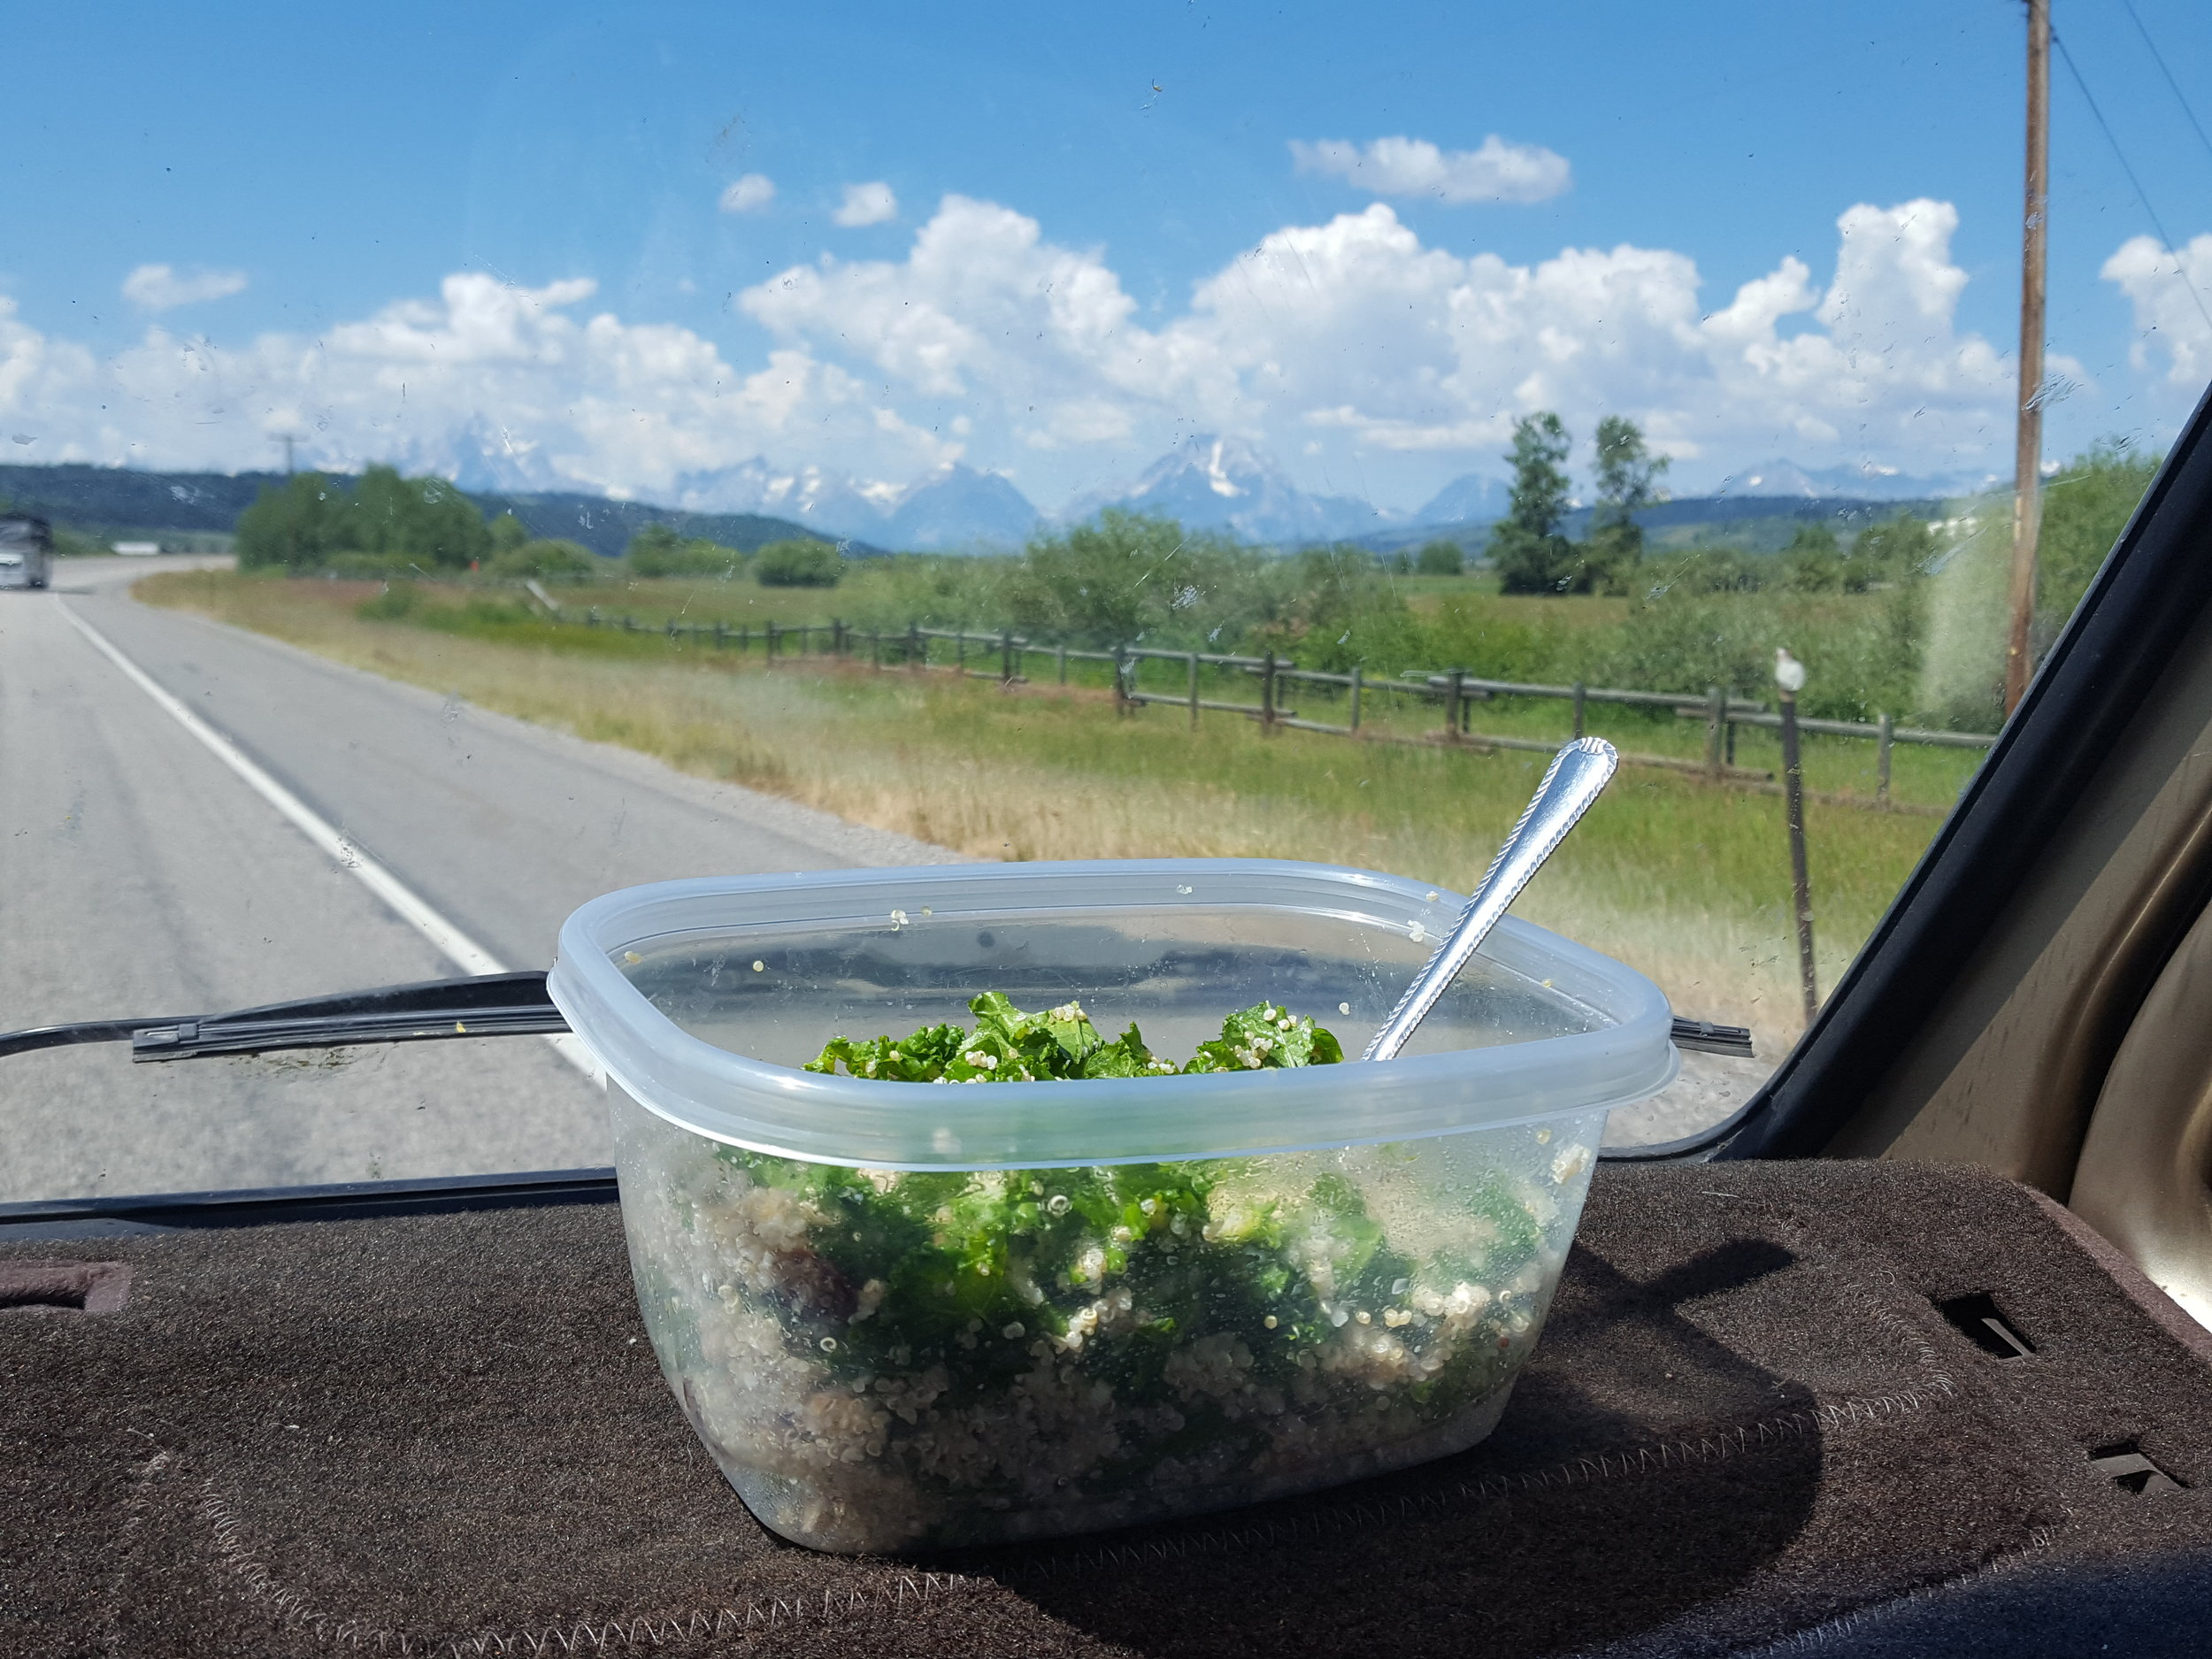 My lunch (queen-o 'n kale)with mountain views in the distance. Lest you think I've gone crunchy, dinner the previous night consisted of ramen and cheetos